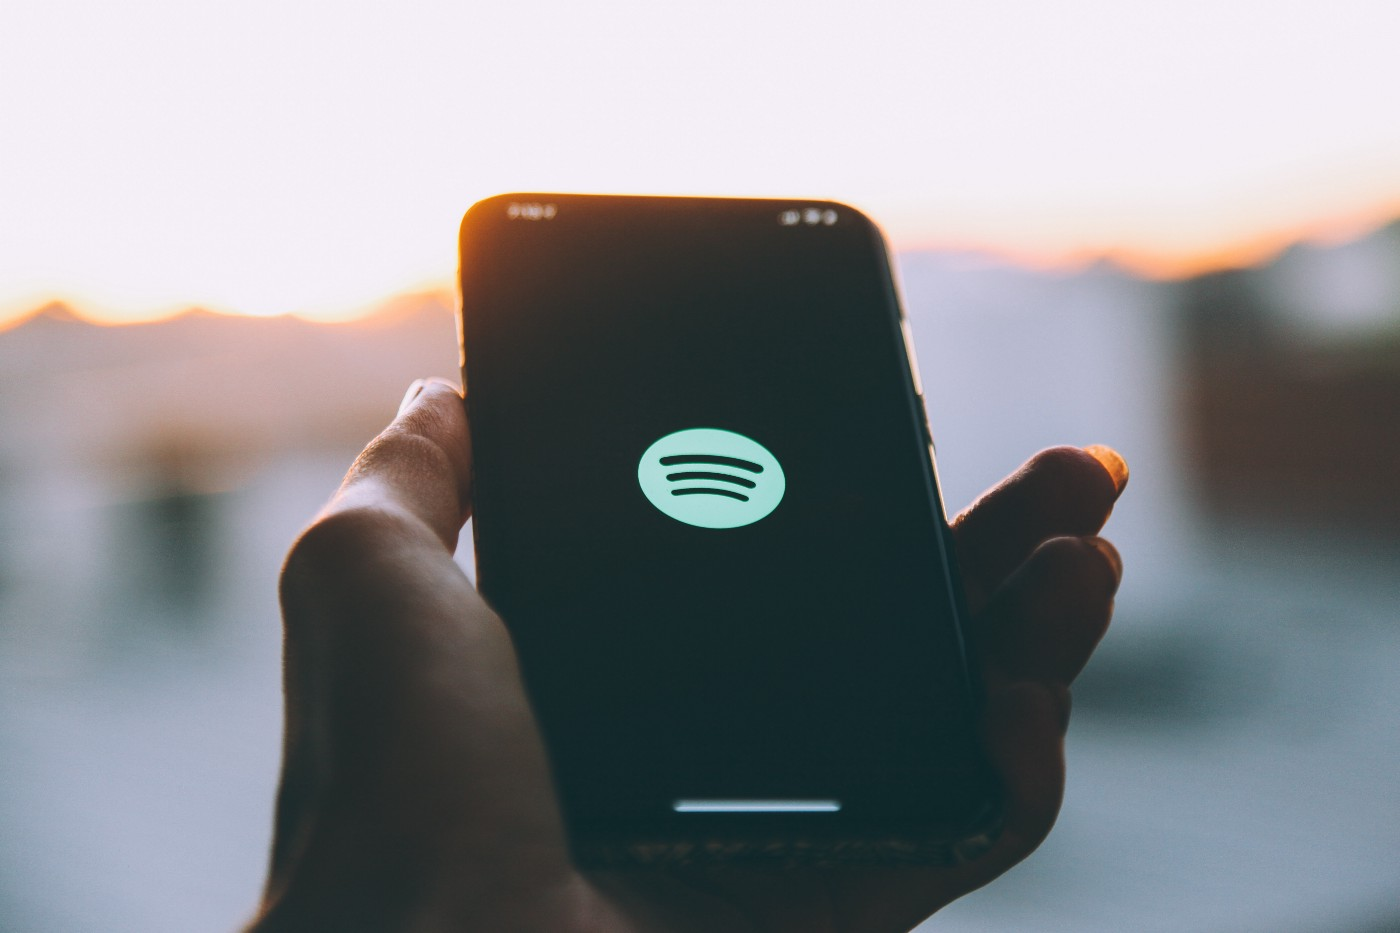 Hand holding a phone with Spotify logo onscreen